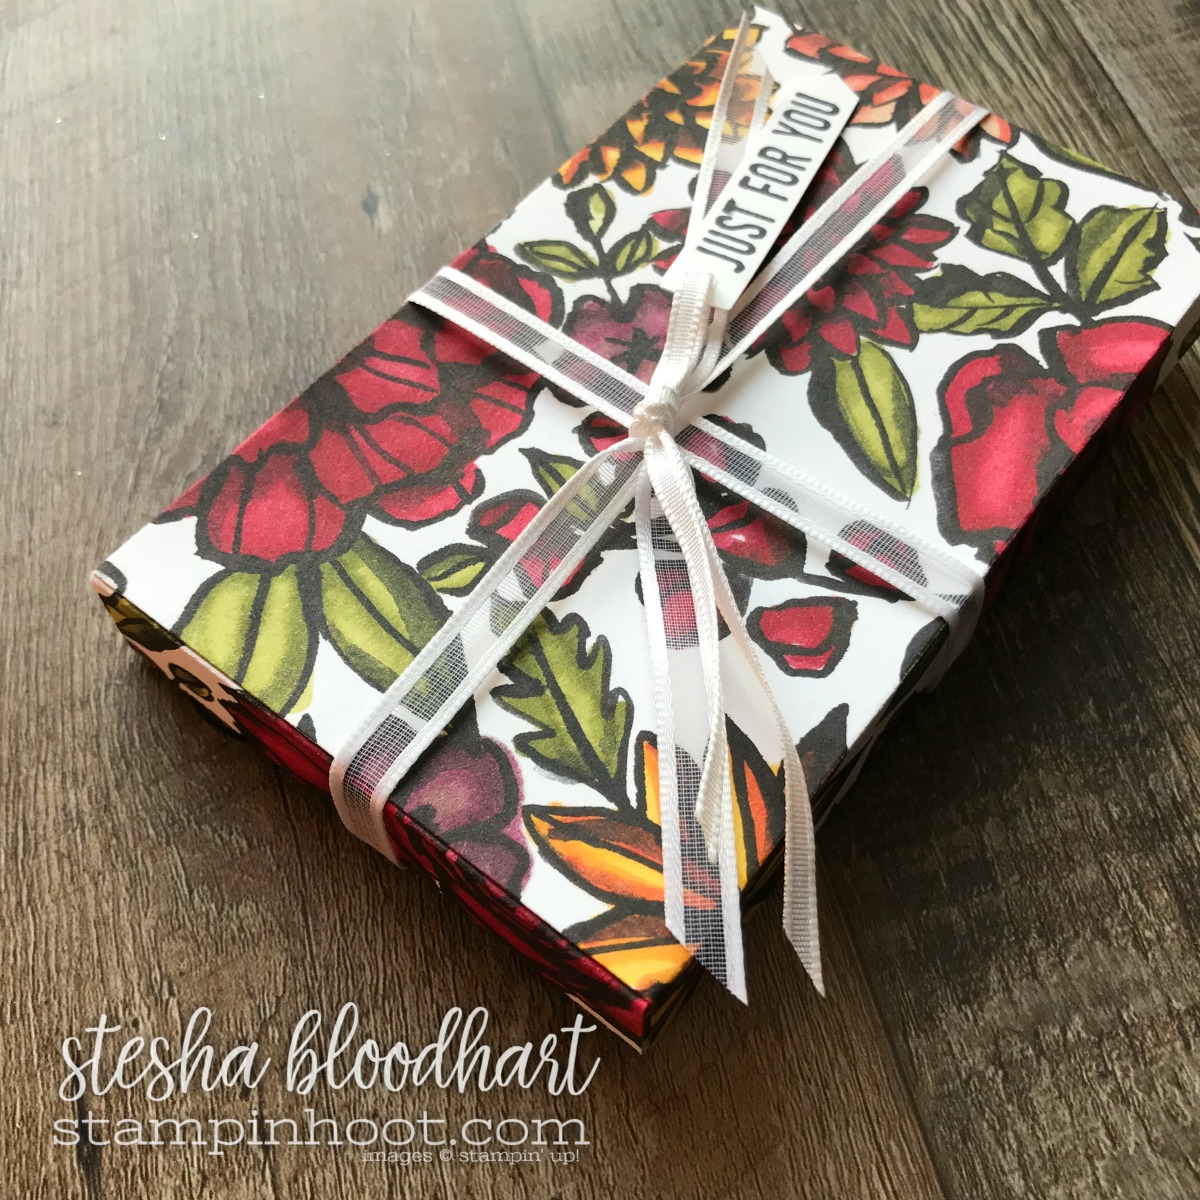 Petal Passion Designer Series Paper Colored with Stampin' Blends Premier Alcohol Markers. Box Created with Lots to Love Box Framelits Dies. #stampinhoot #steshabloodhart #lotstolove #petalpassion #stampinblends